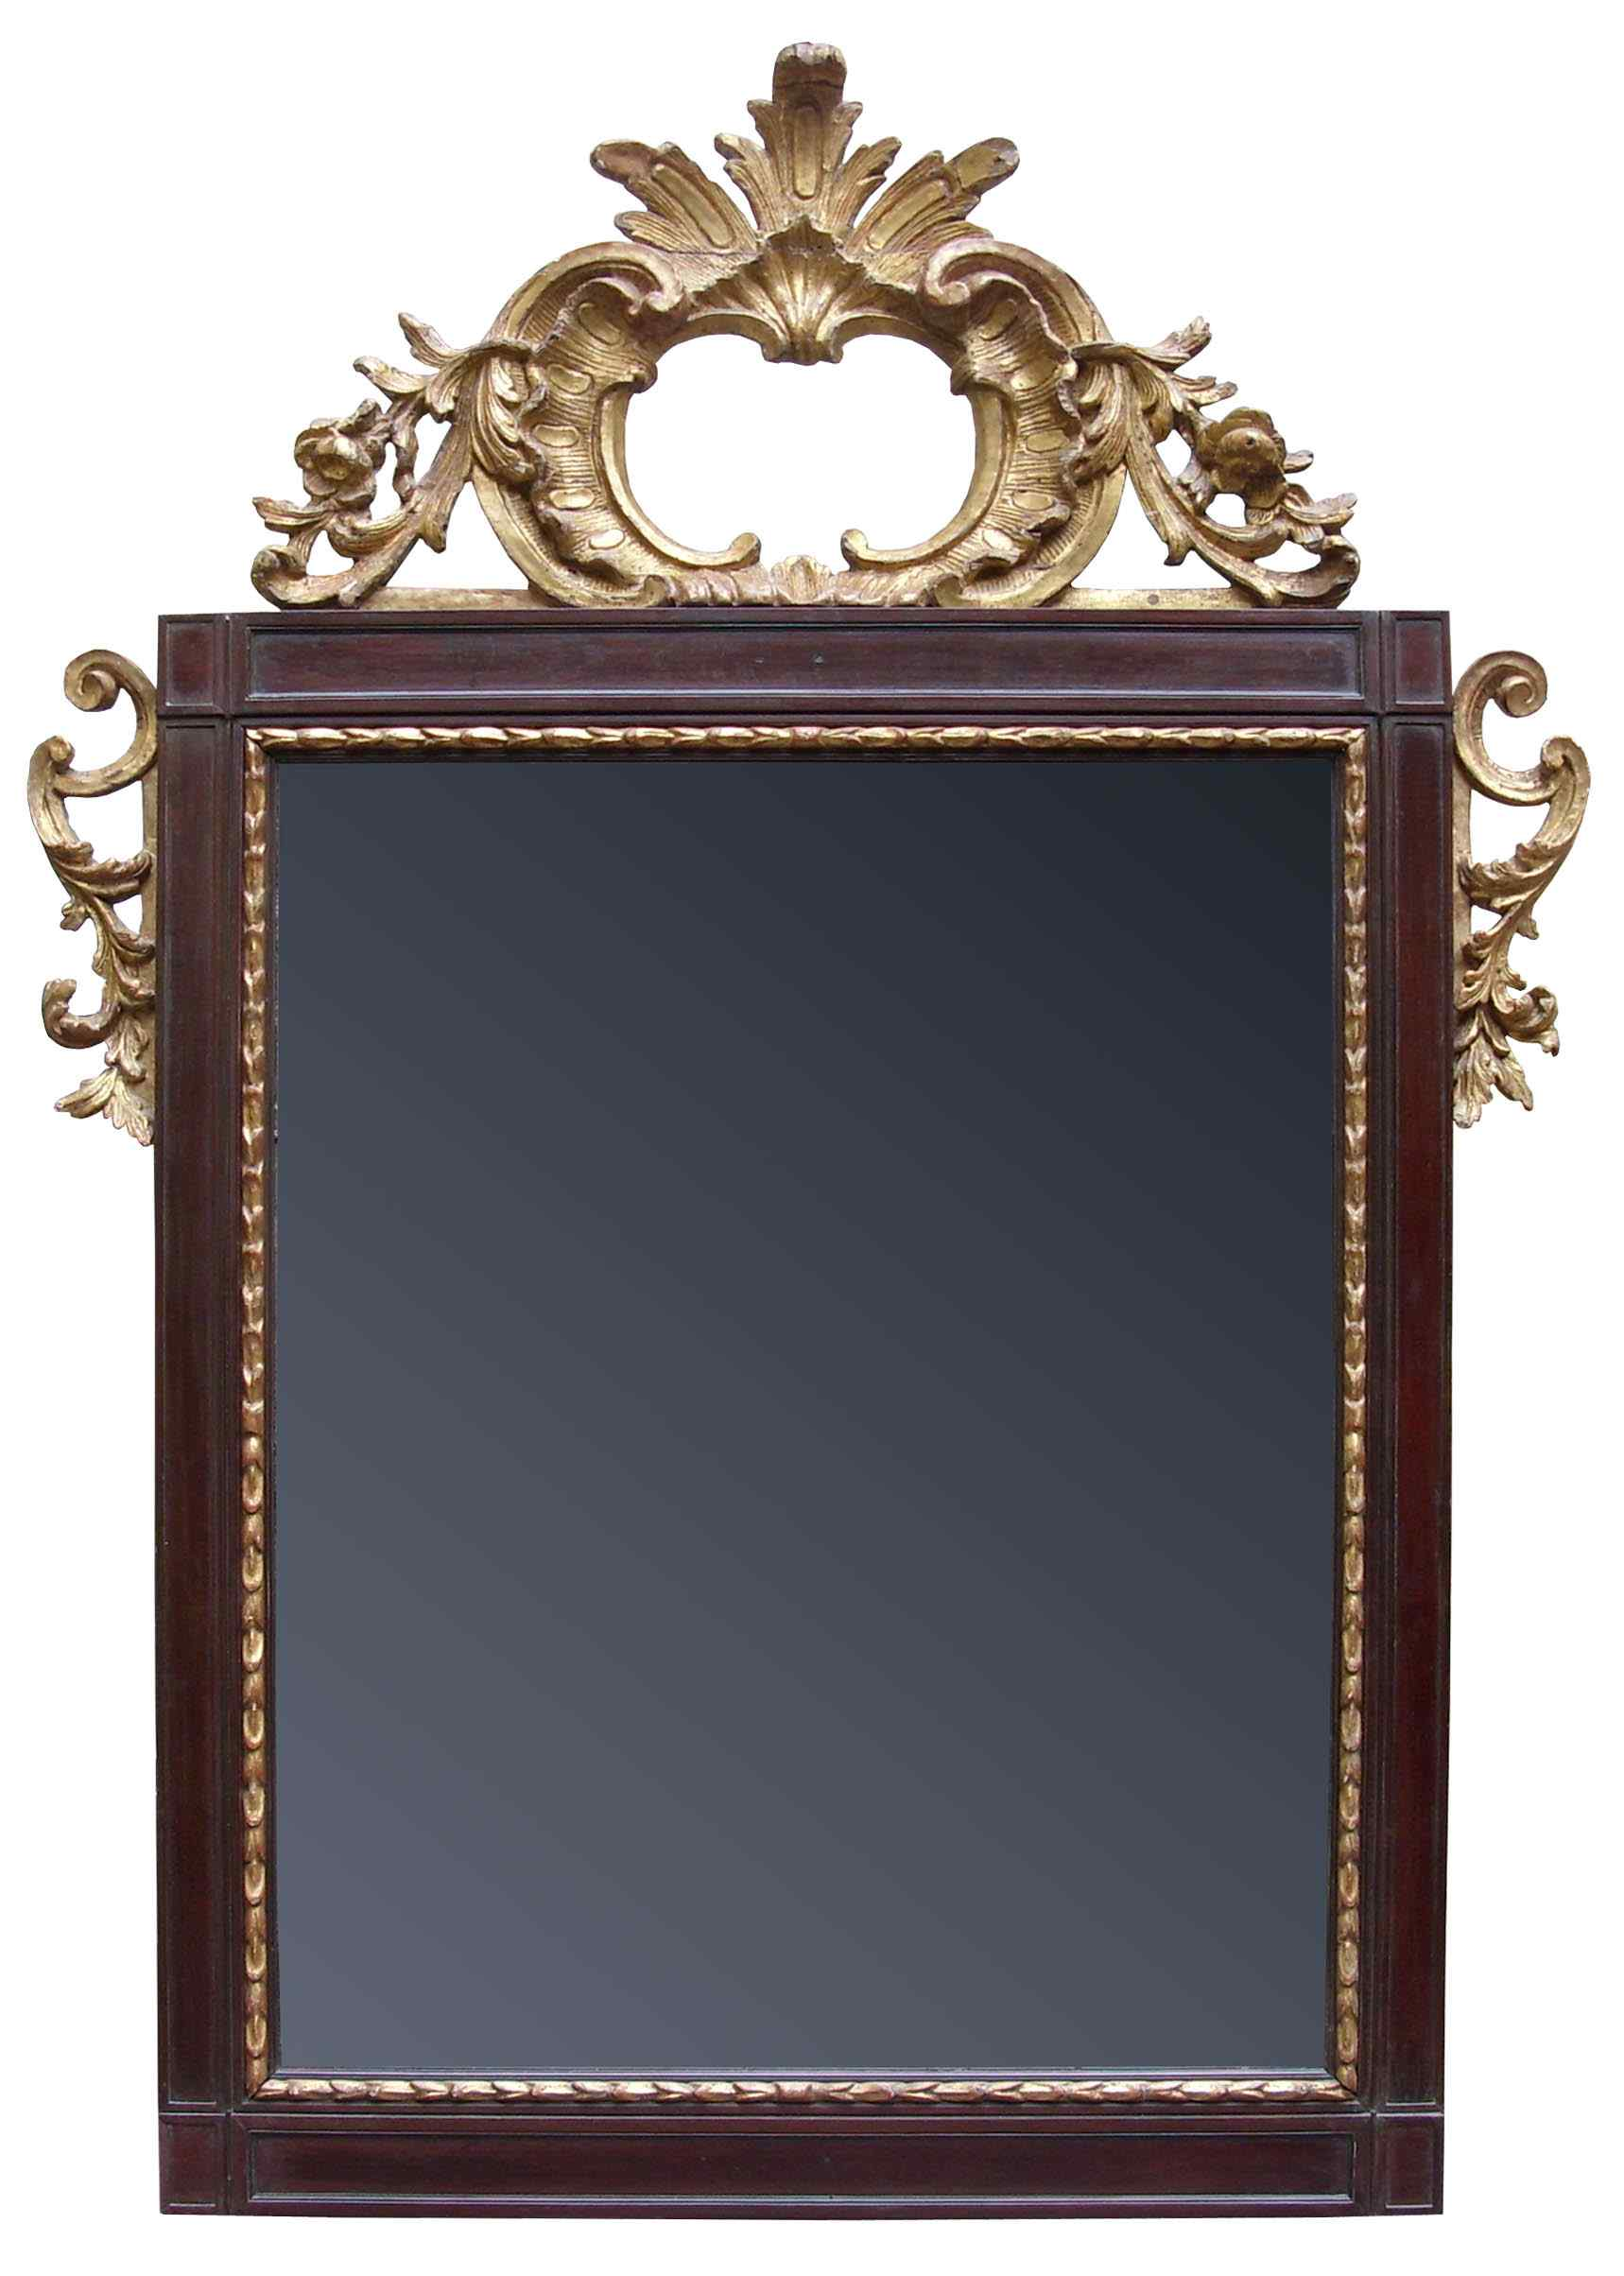 17th century, mirror with coping